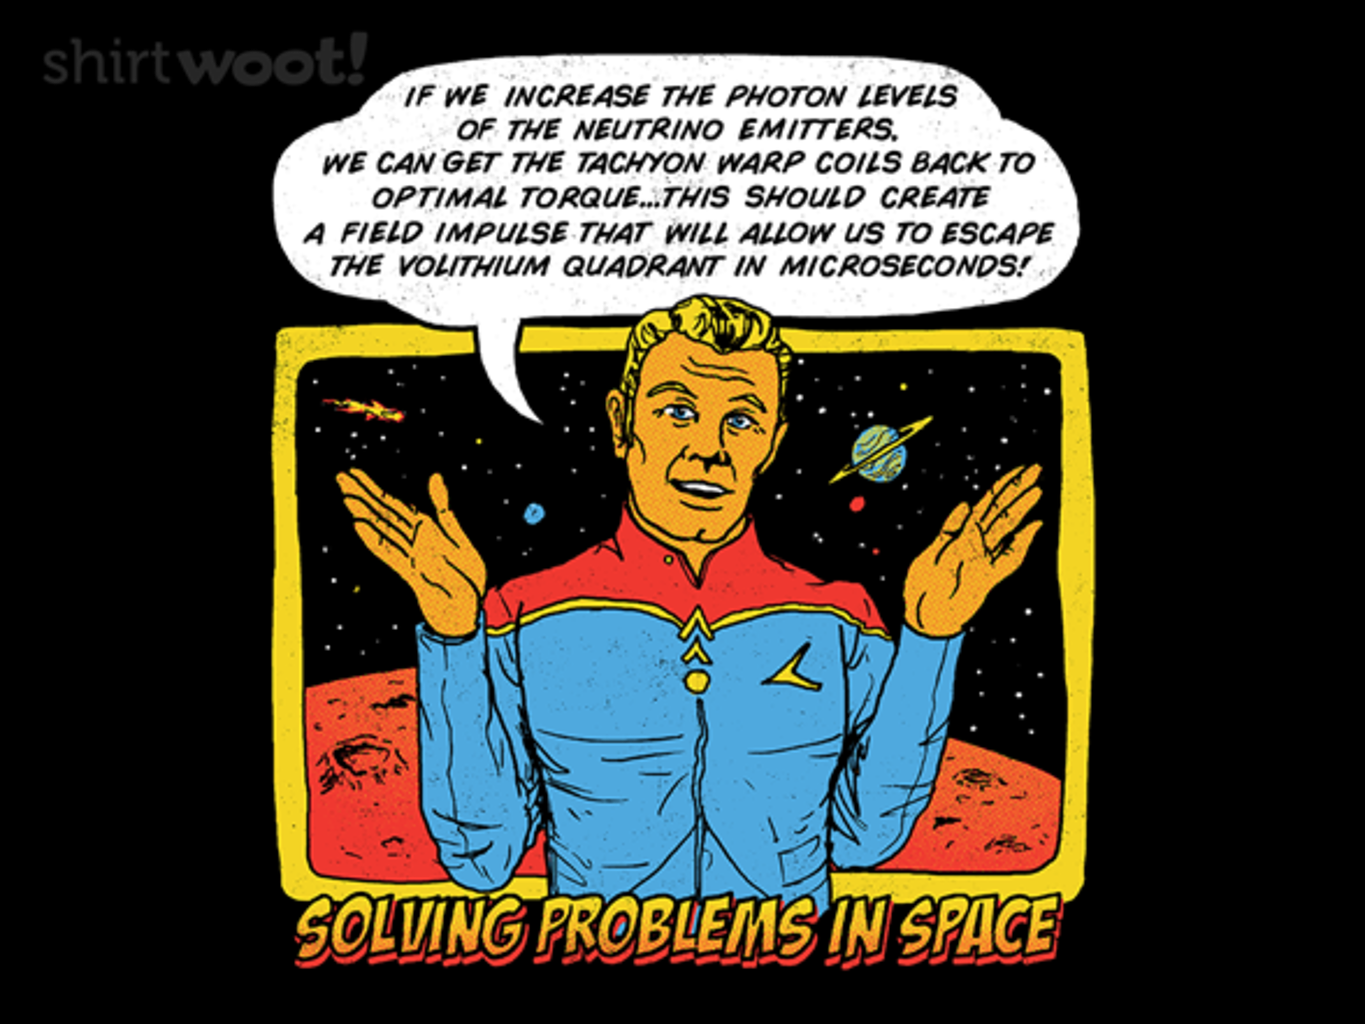 Woot!: Solving Problems In Space